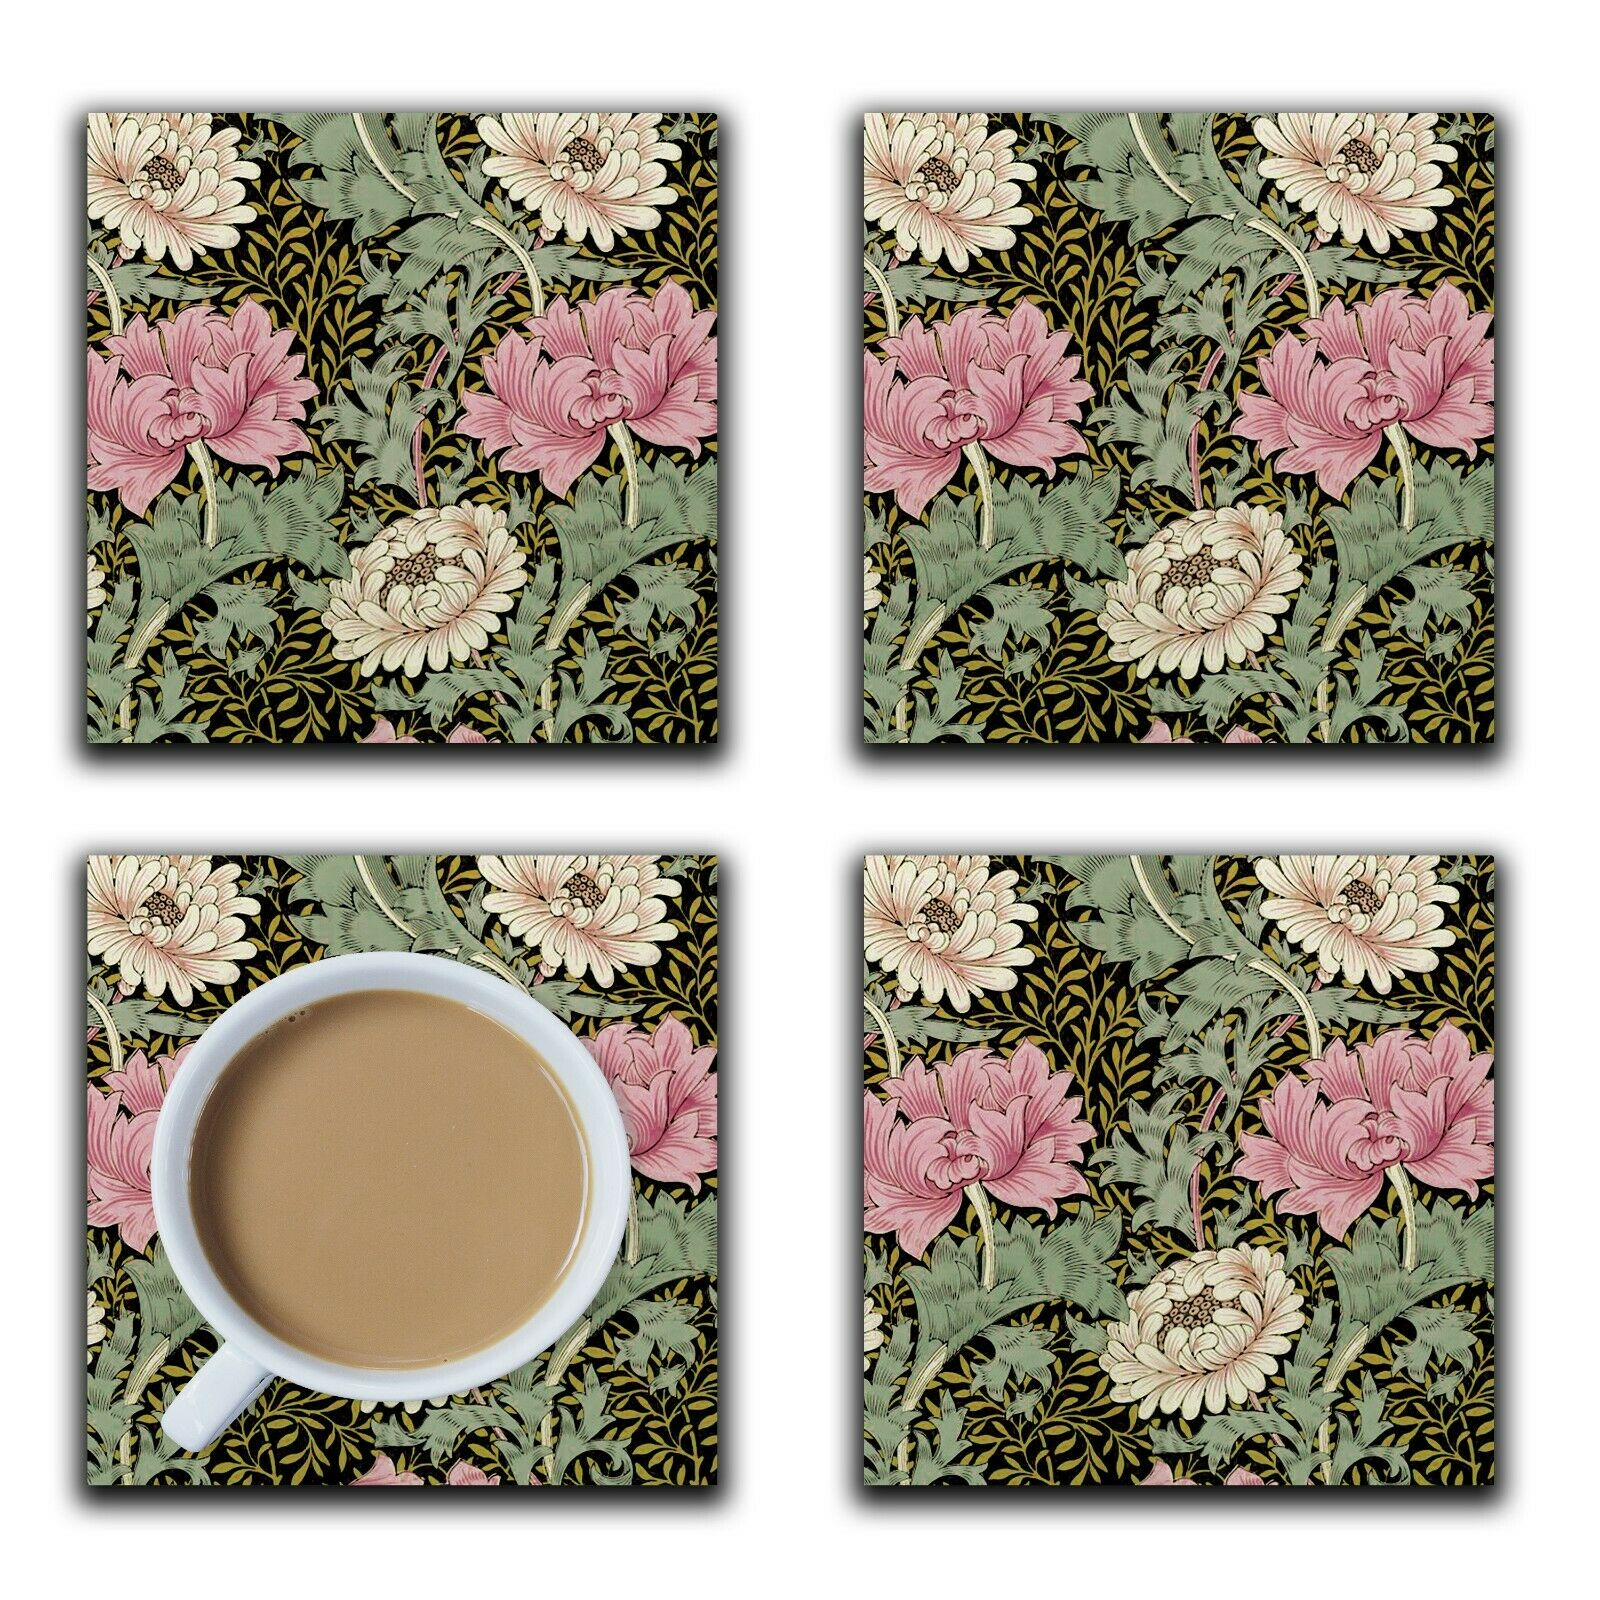 Embossi Printed William Morris Chrysanthemum, wood or ceramic tile, 4 Coasters